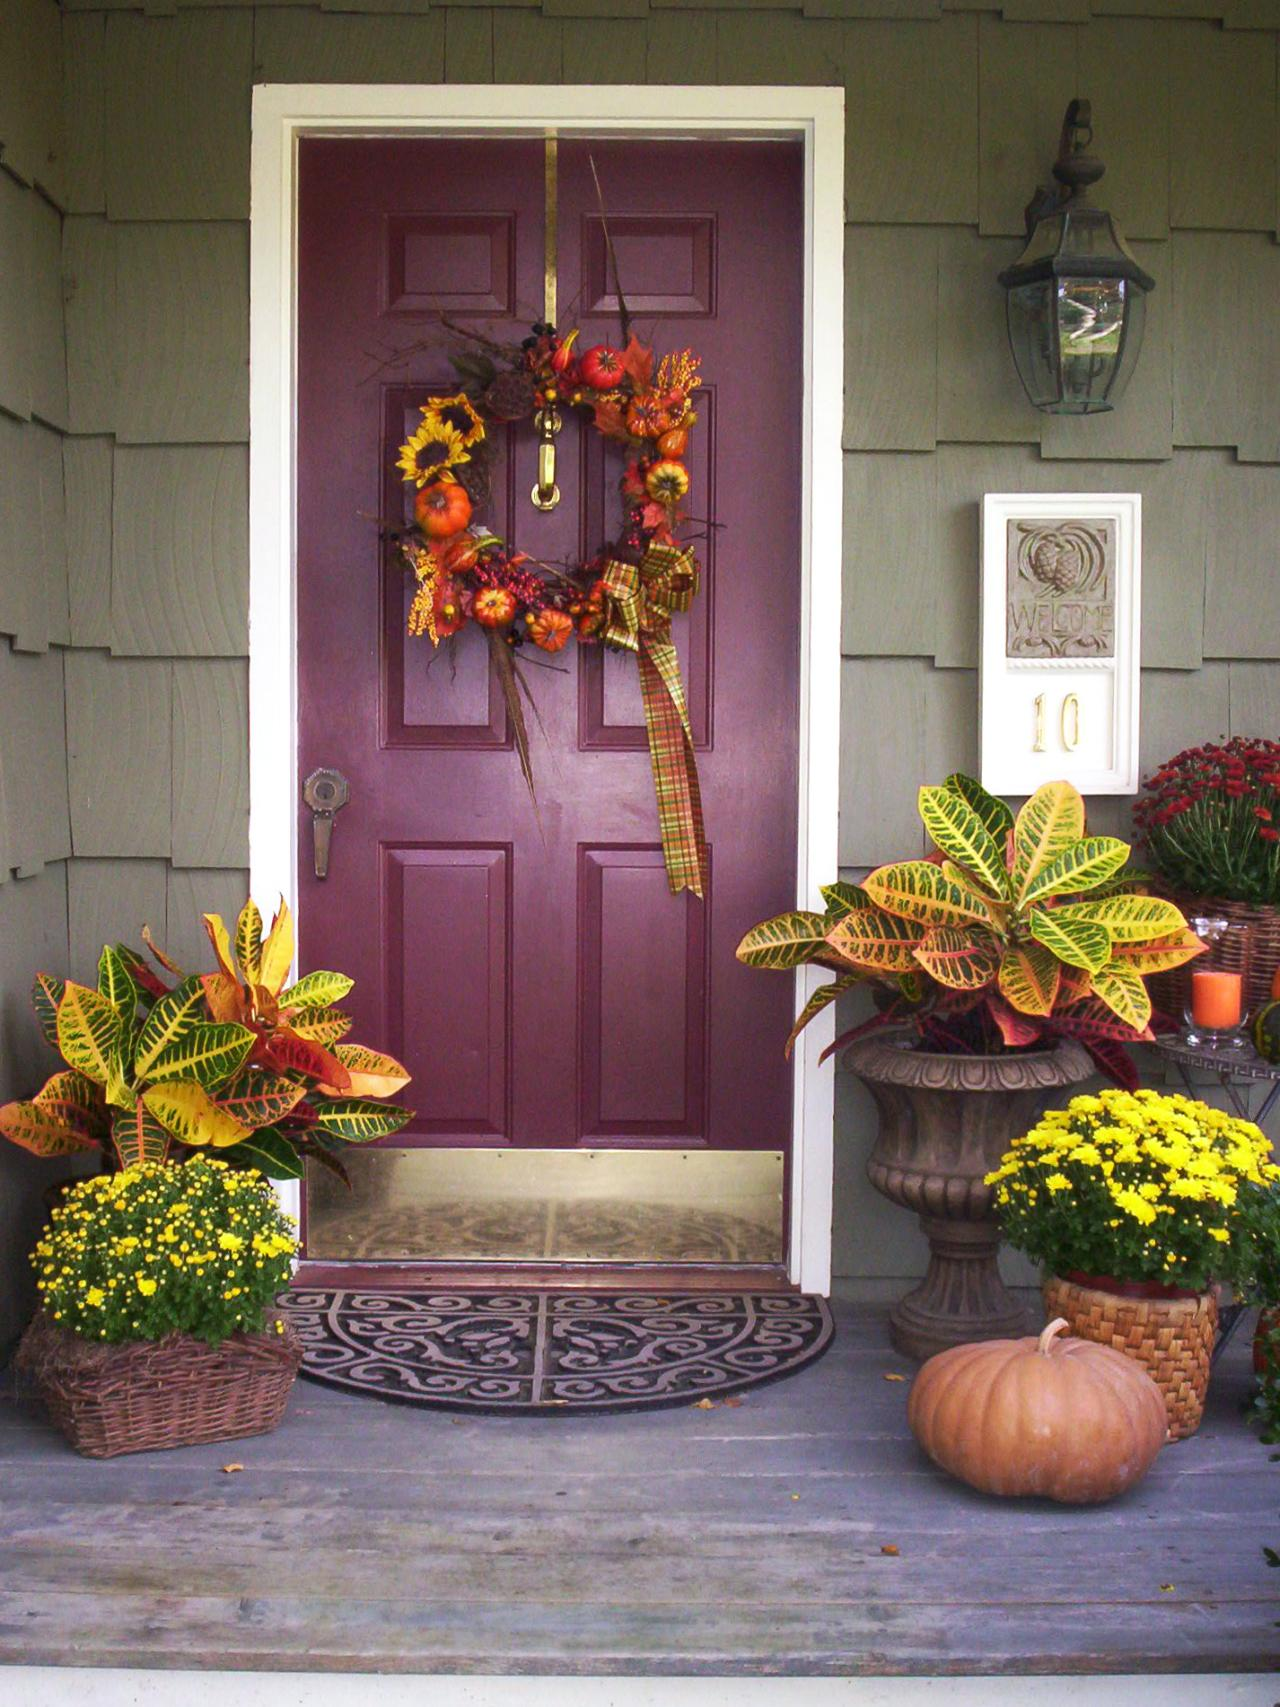 Interior design styles and color schemes for home for Outdoor front porch decor